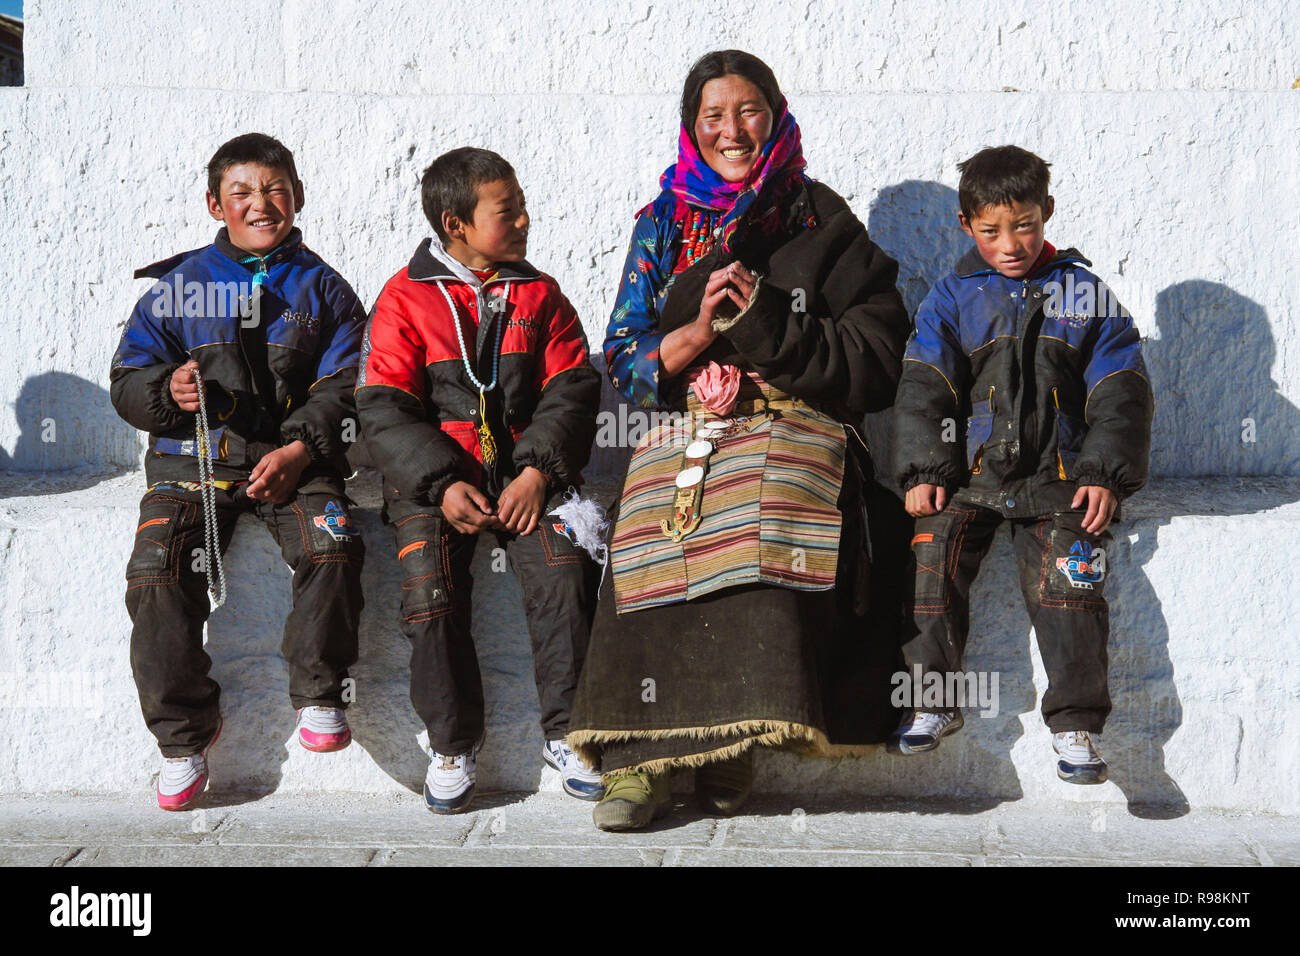 Lhasa, Tibet Autonomous Region, China : A Tibetan pilgrim family sit outside a Buddhist stupa. - Stock Image